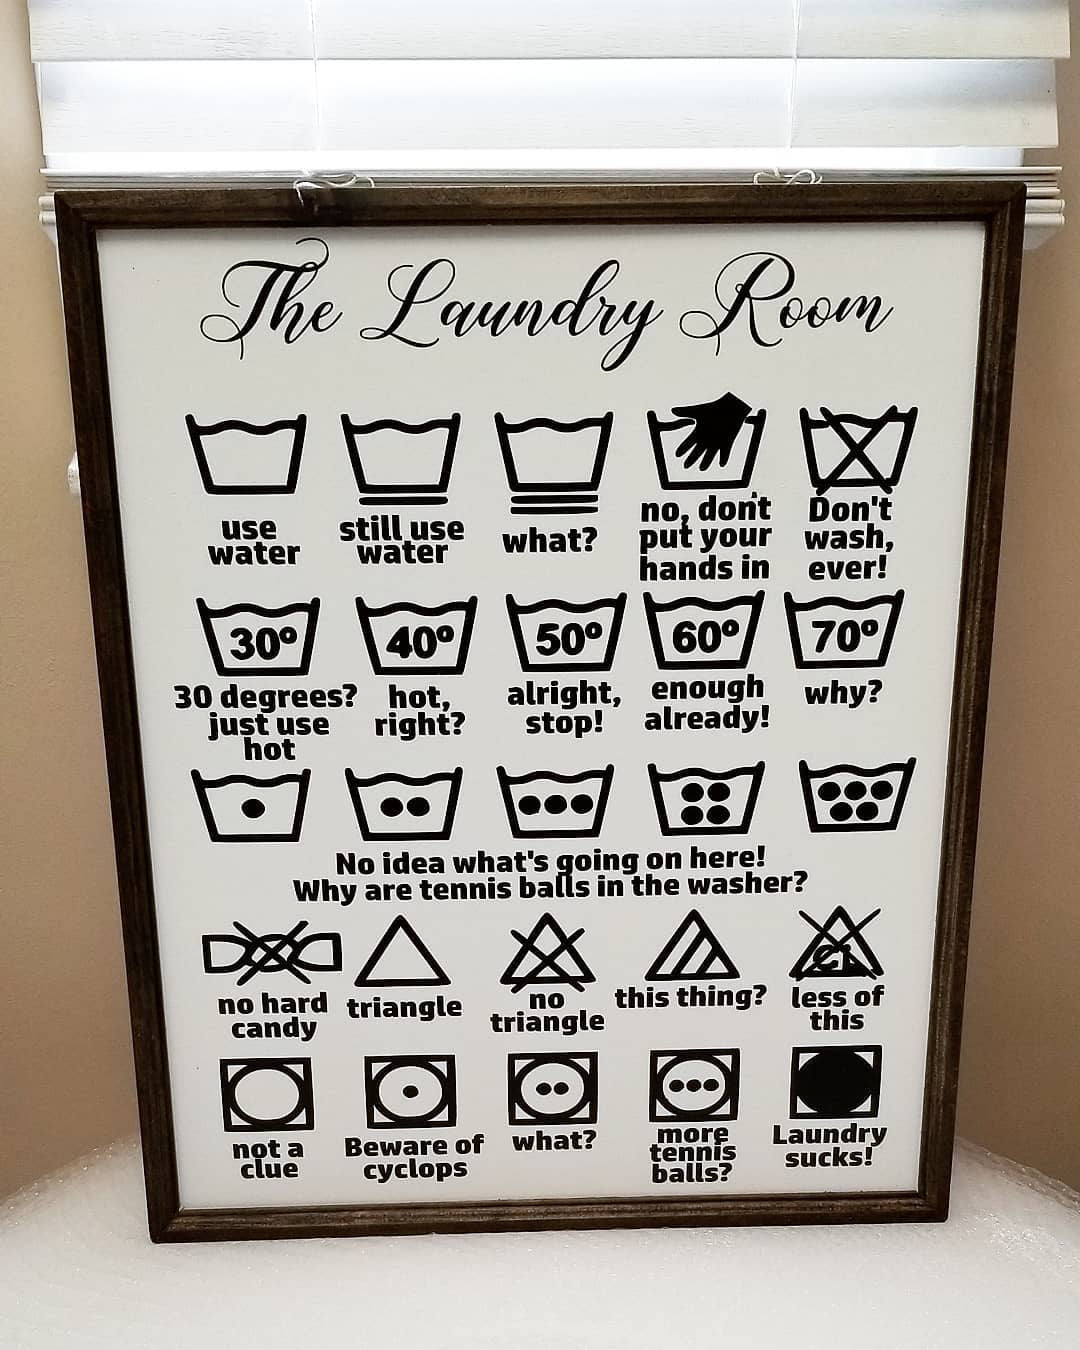 Laundry symbols sign, funny laundry room sign, laundry room decor, mudroom decor, laundry sucks sign, funny laundry symbols, farmhouse sign